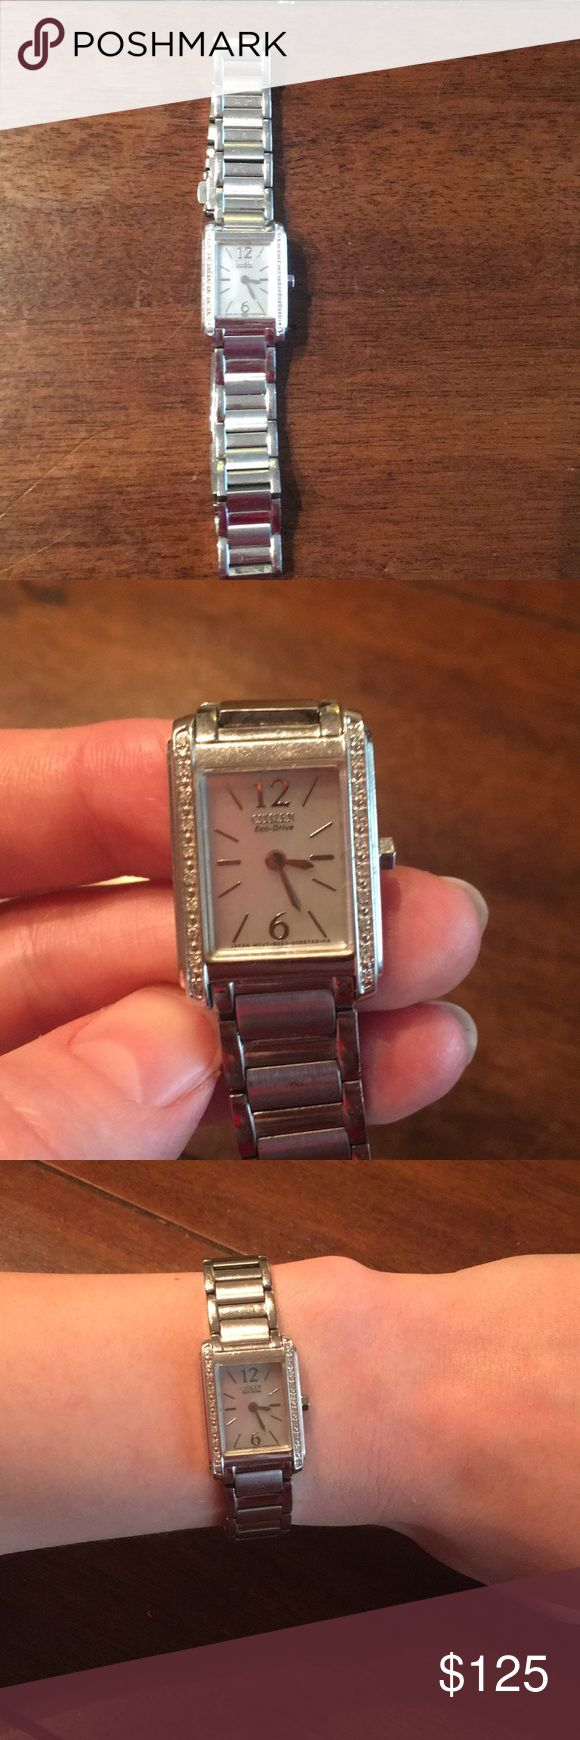 """Ladies Citizen Eco-Drive Watch Beautiful, dainty watch with rectangle face. Face color is very faint iridescent color. Pave stones on each side of the face. Very minor scratches, as pictured, from wear over the years. In great, used condition. Solar-powered, so no need for batteries. Approx. 7"""" length. No trades. Accepting reasonable offers✨✨ Citizen Accessories Watches"""